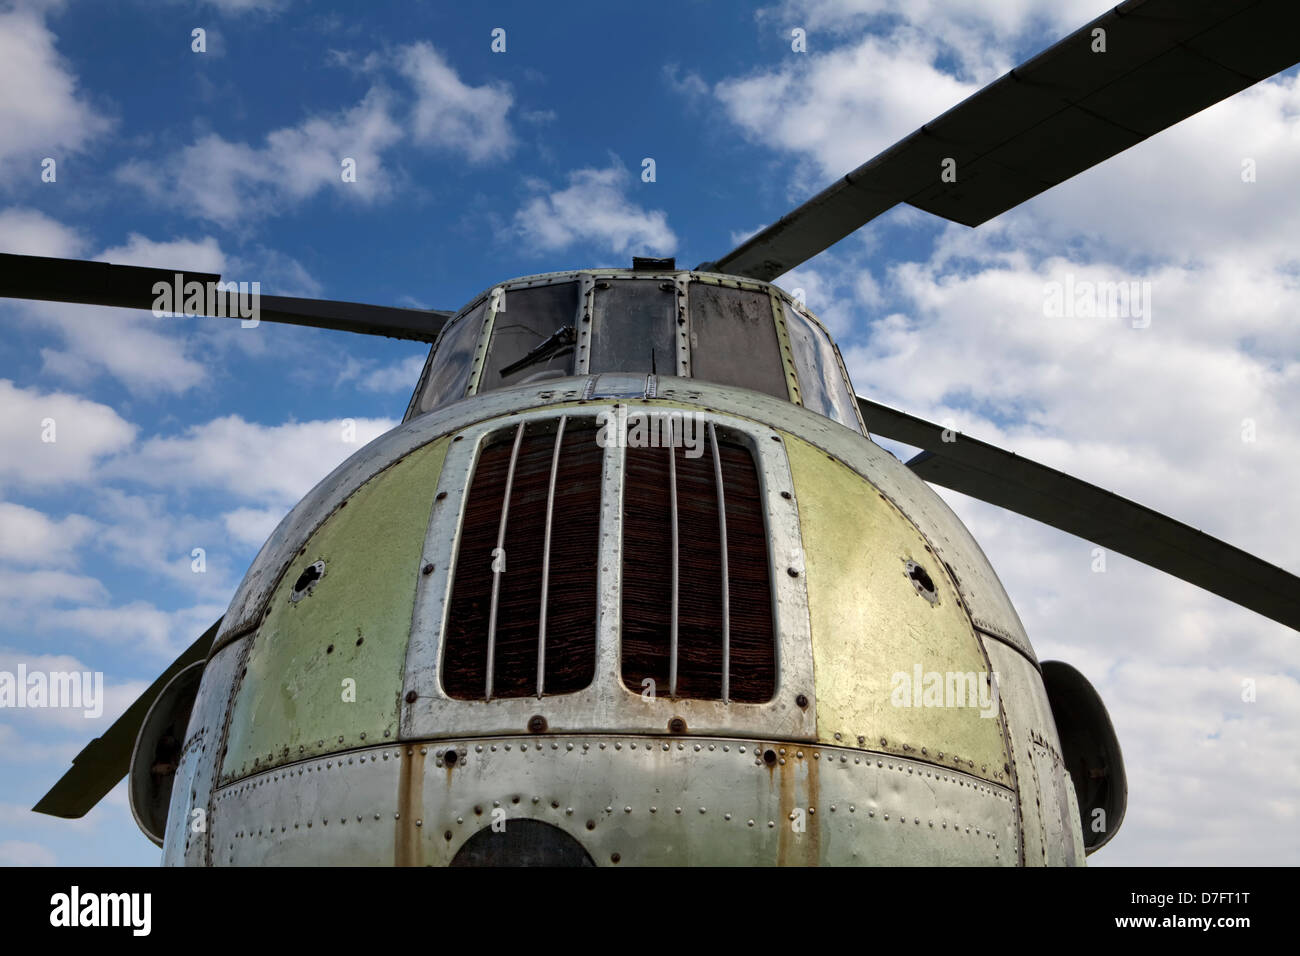 Aeroflot Mil Mi-4, Heavy Soviet transportation helicopter, Aircraft Collection Hermeskeil, Germany, Europe - Stock Image